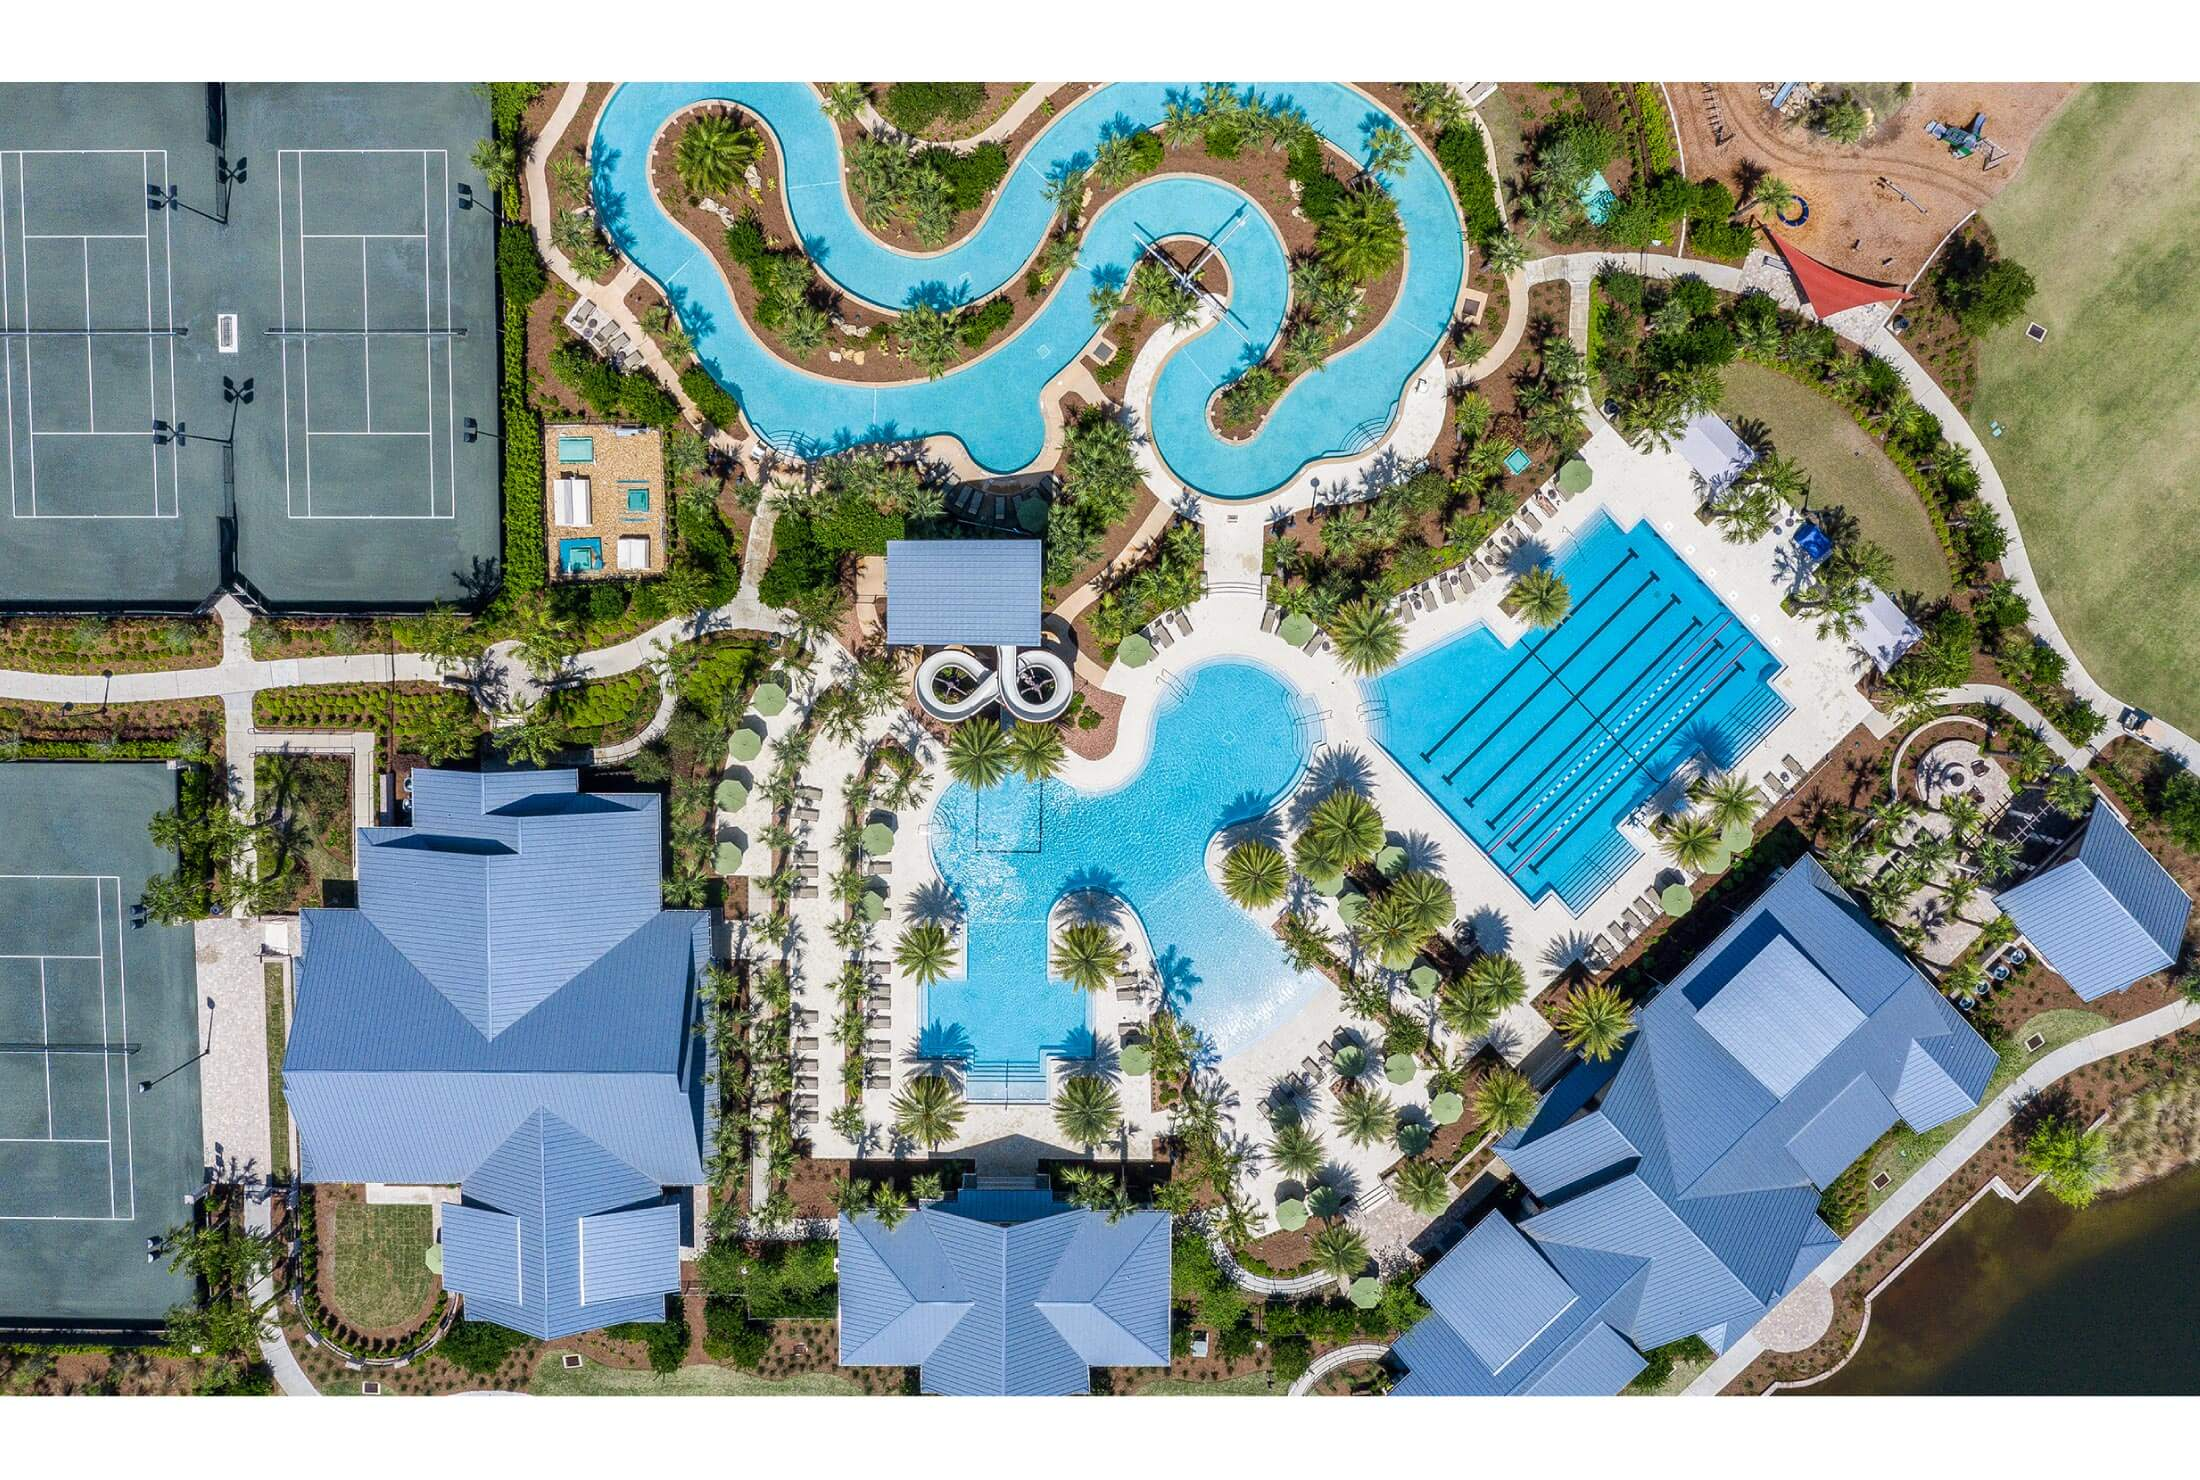 Aerial photo of the Shearwater community amenity center